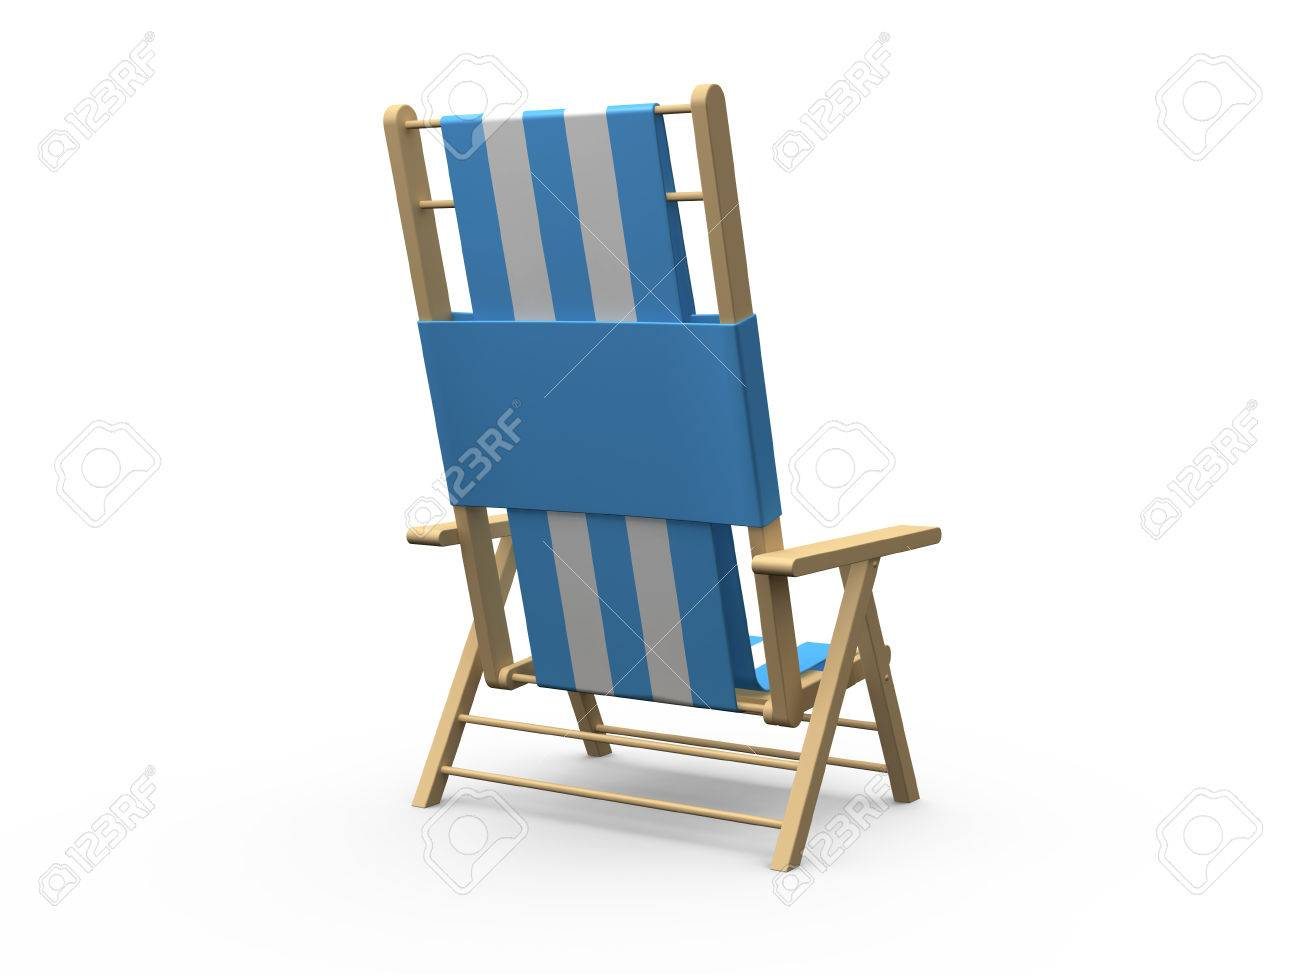 Wooden beach chair back - Blue And White Wooden Beach Chair Back View Isolated On White Background Stock